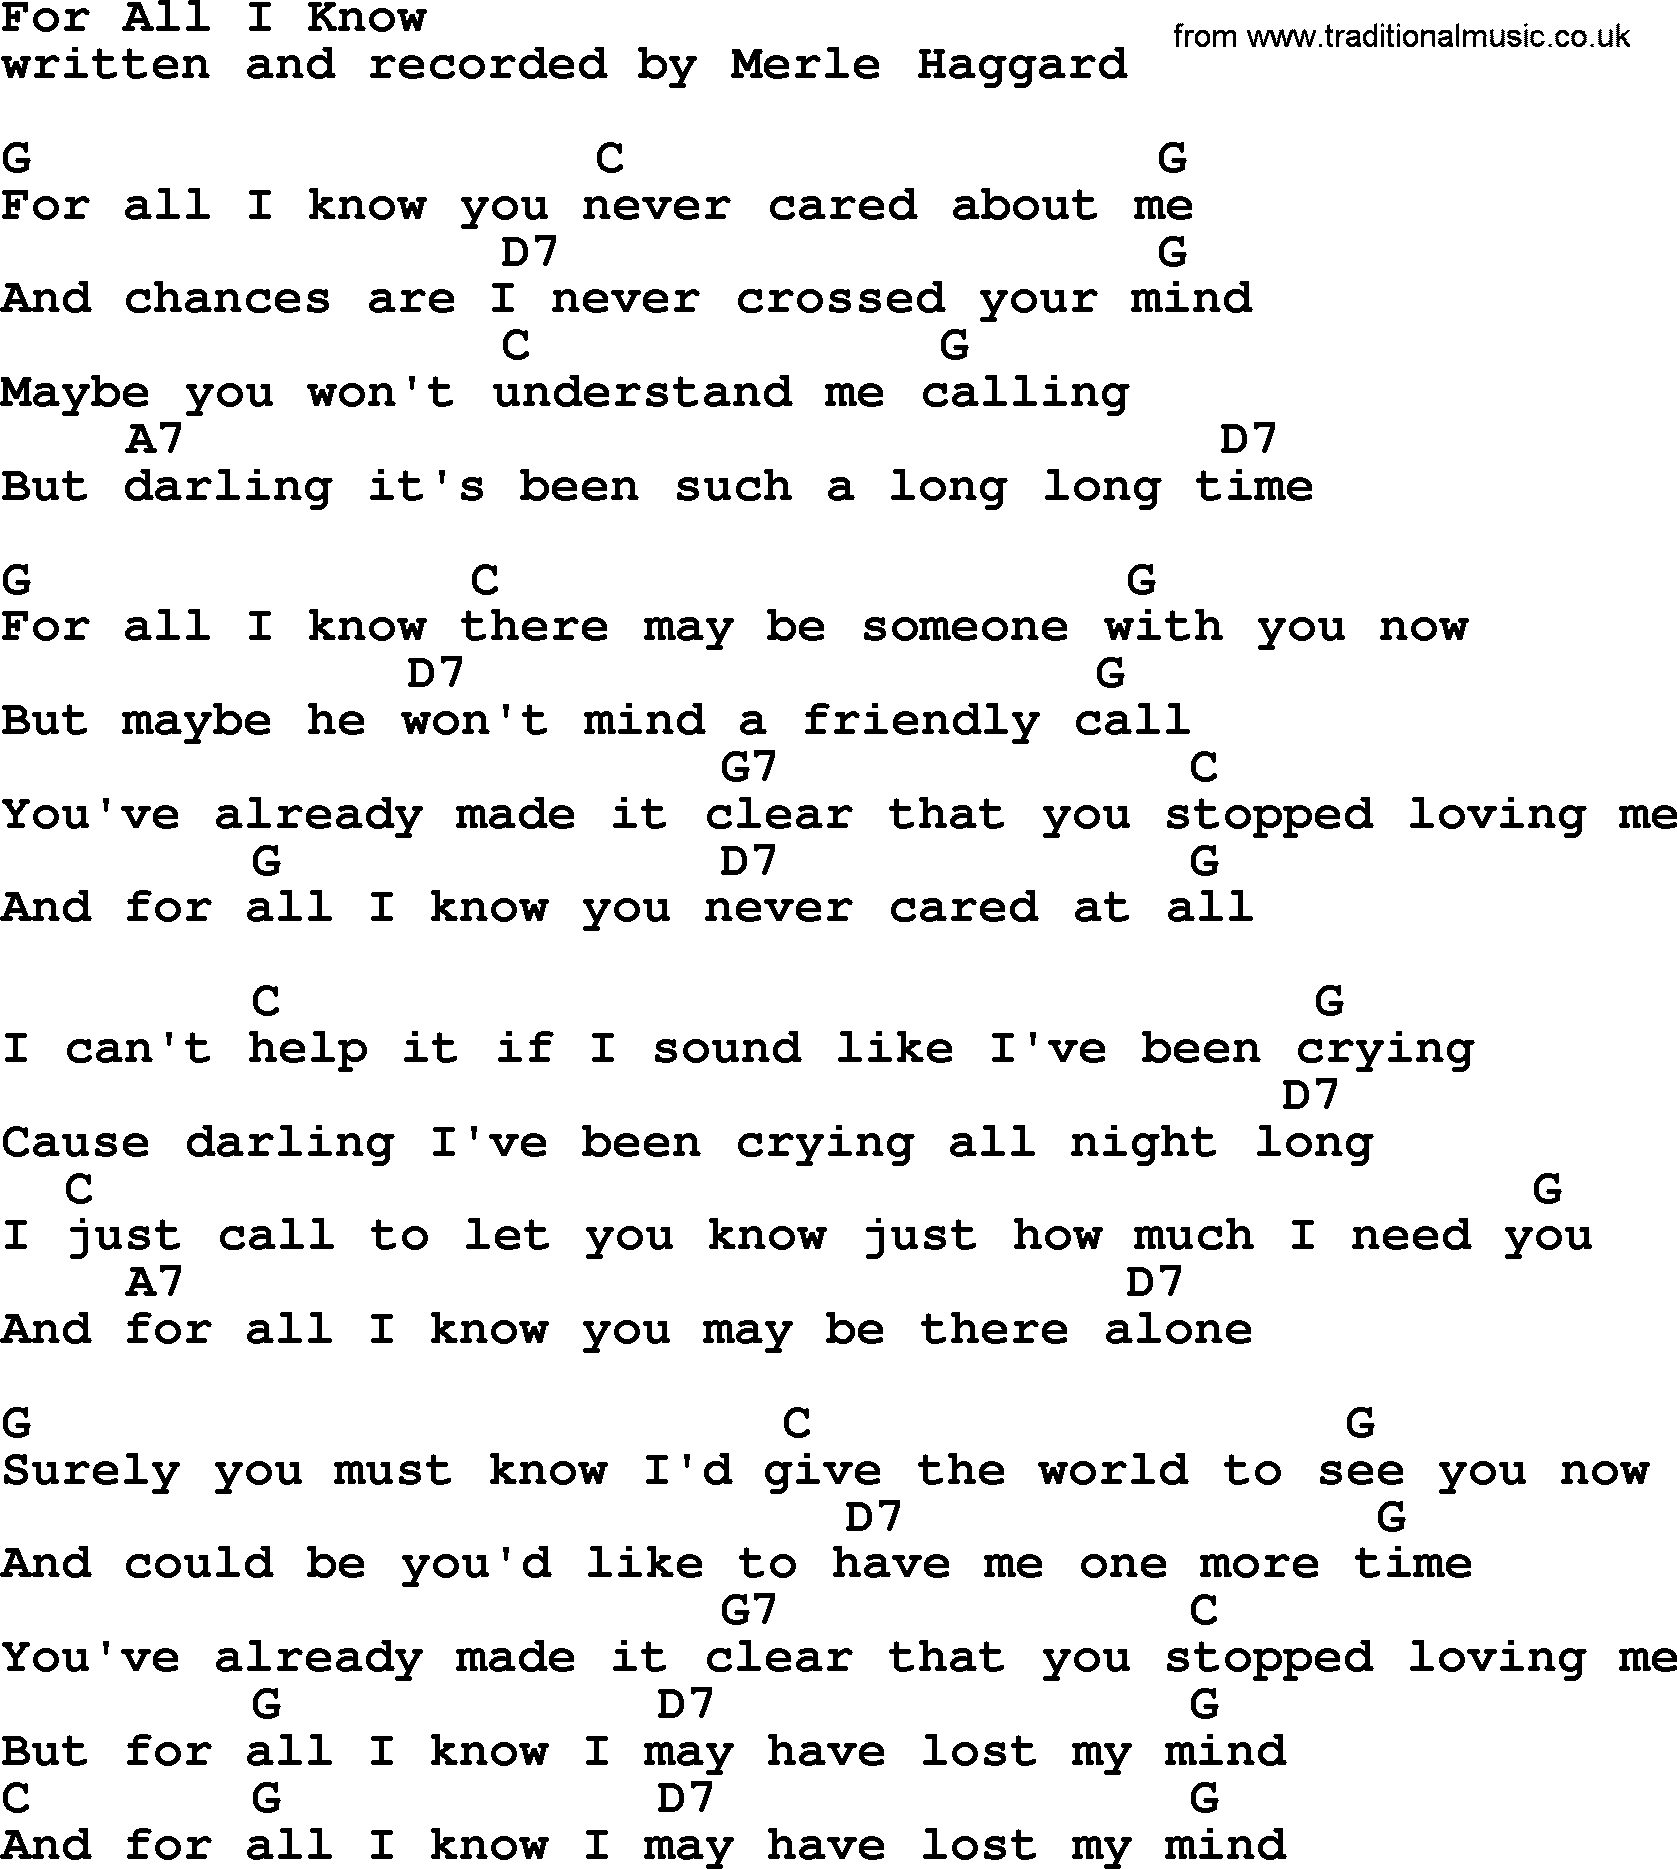 For All I Know by Merle Haggard   lyrics and chords